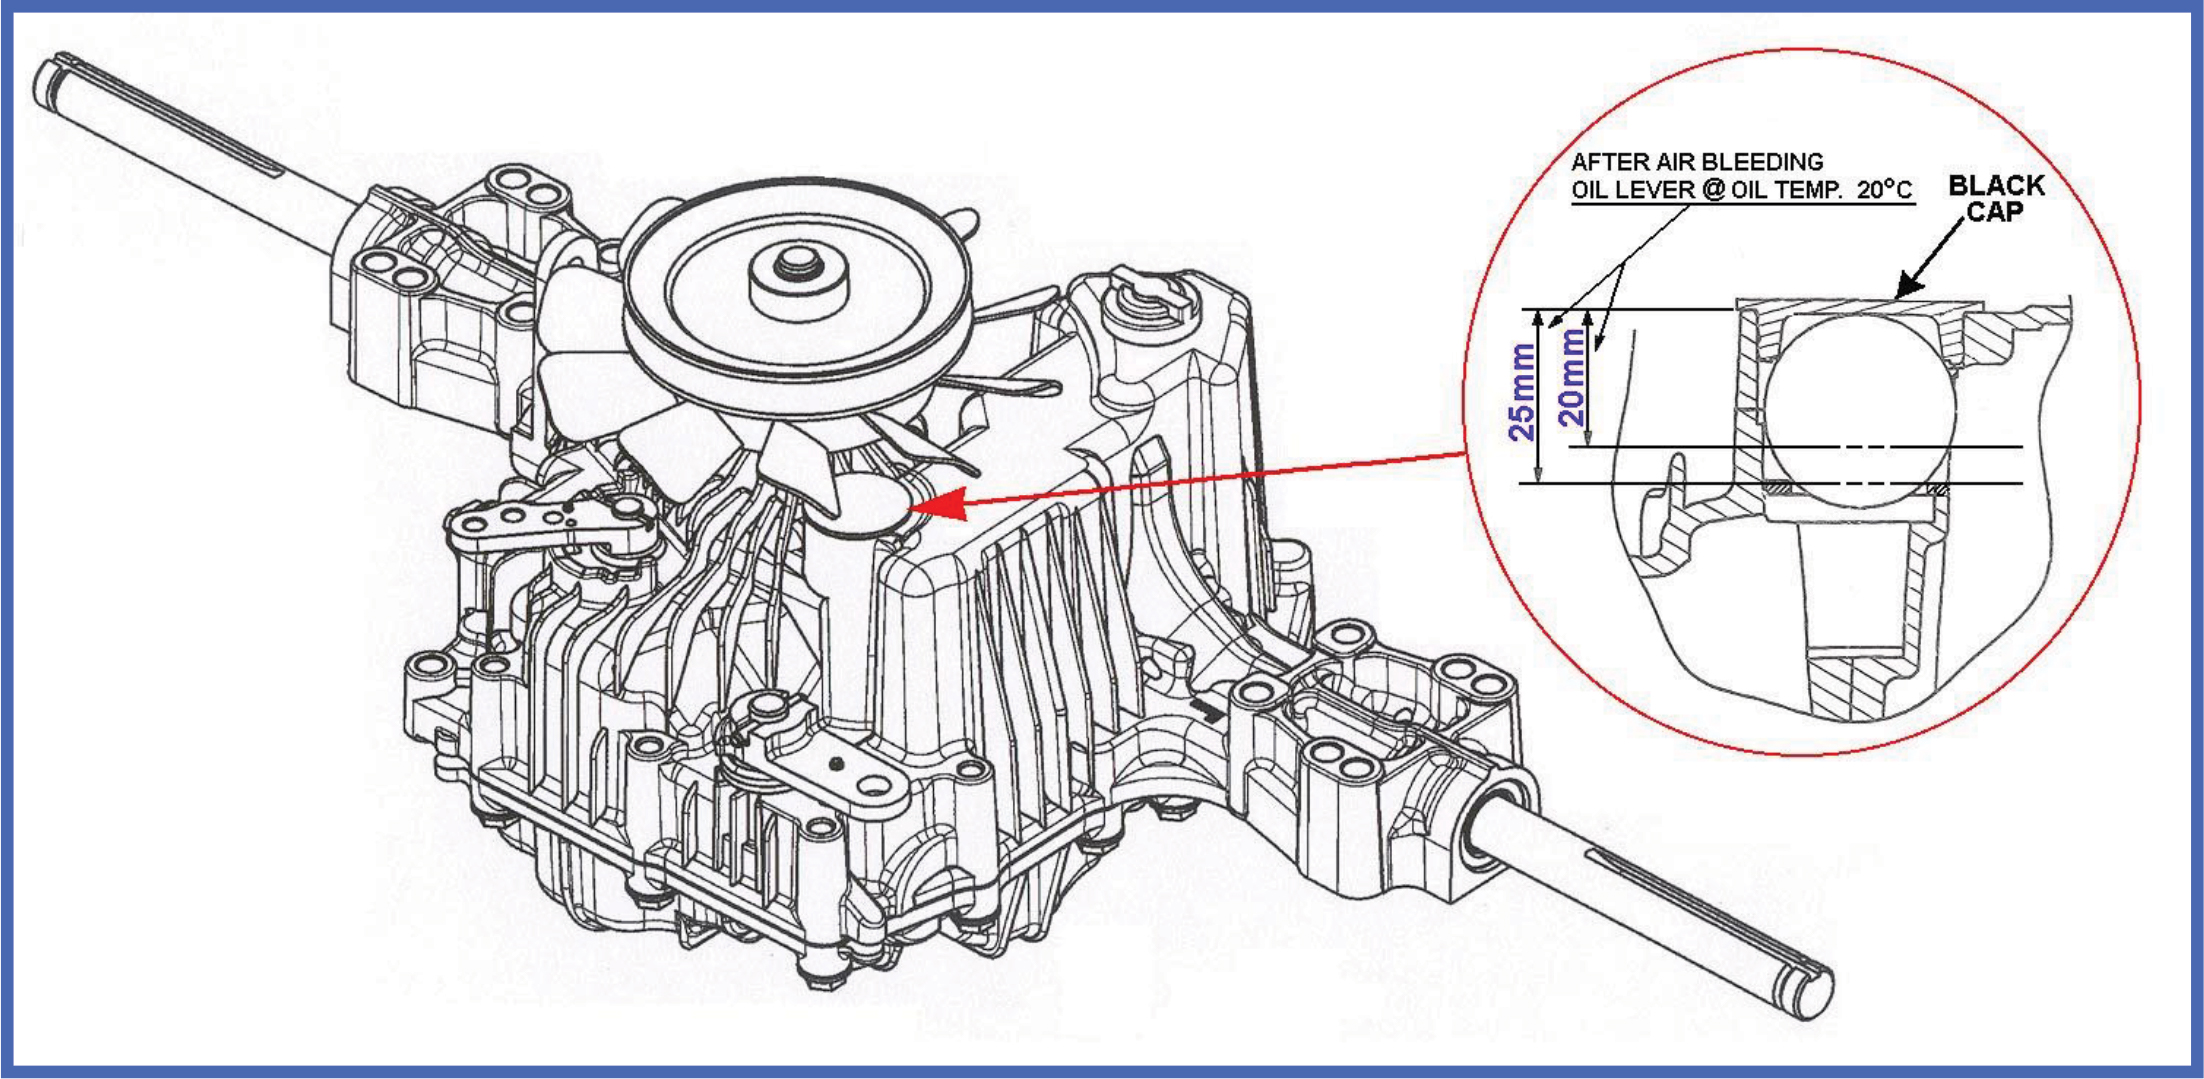 Parts Diagram For Craftsman Lt